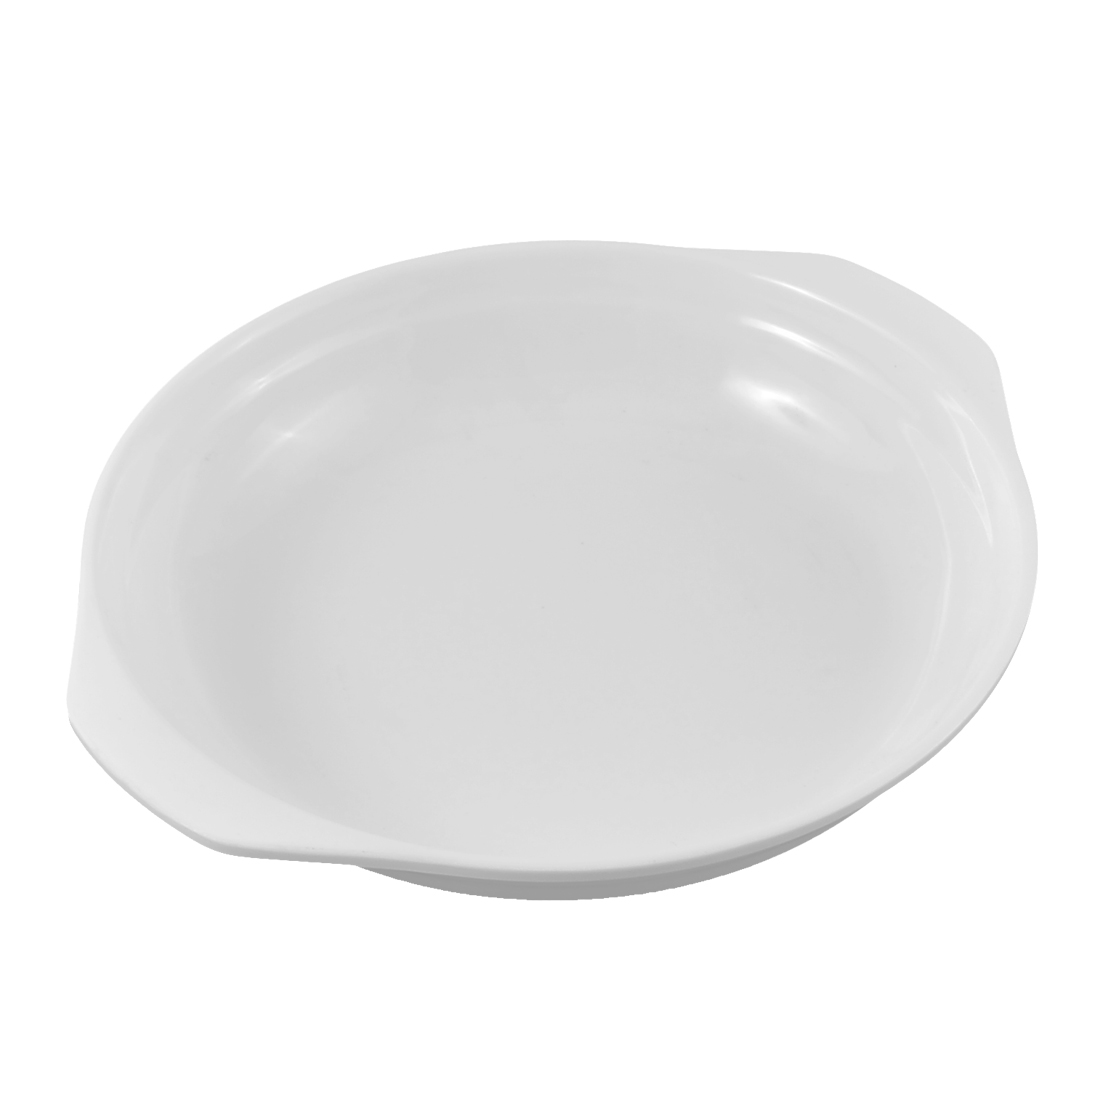 "Restaurant Home Kitchen Plastic Dual Ear Handles Dish Plate White 7"" Dia"